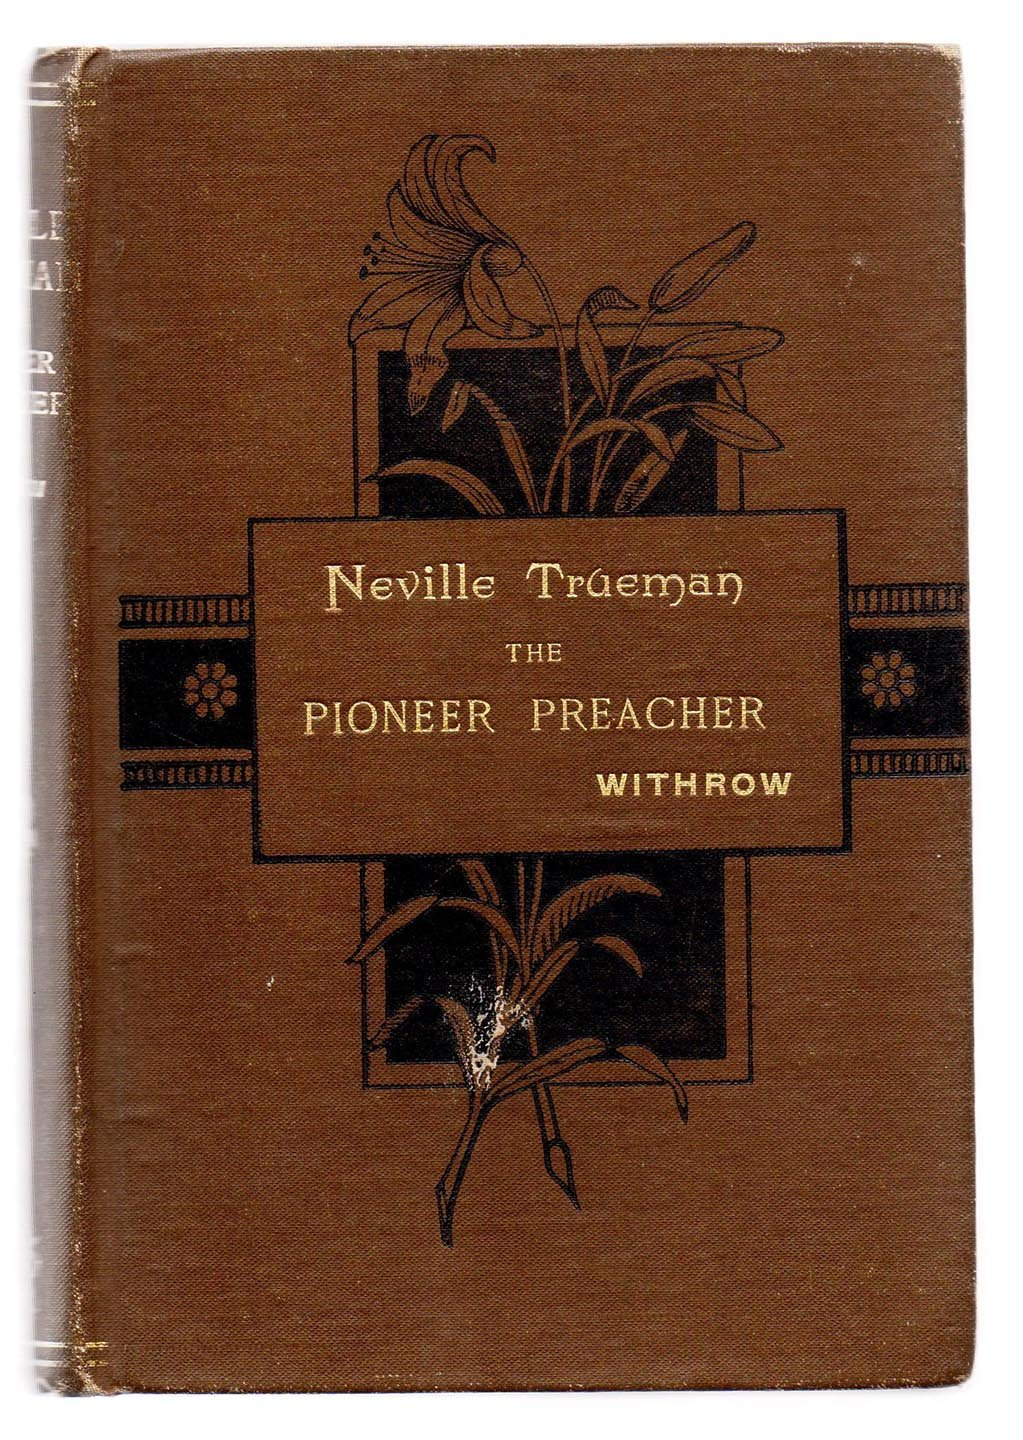 Neville Trueman, The Pioneer Preacher: A Tale of the War of 1812